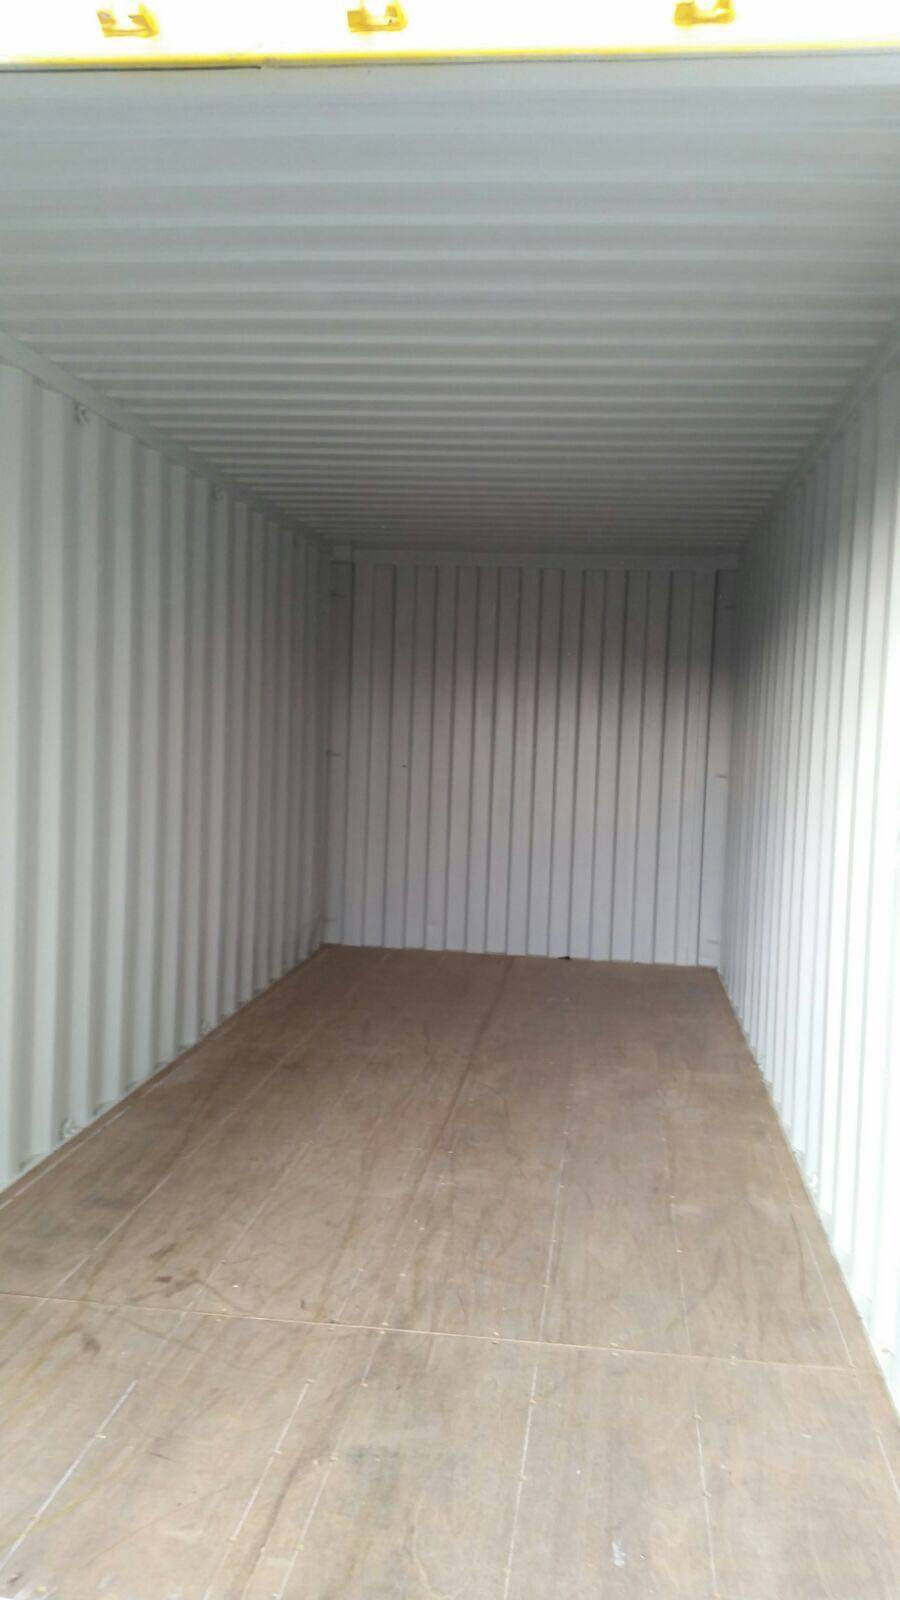 StContainer_leer2